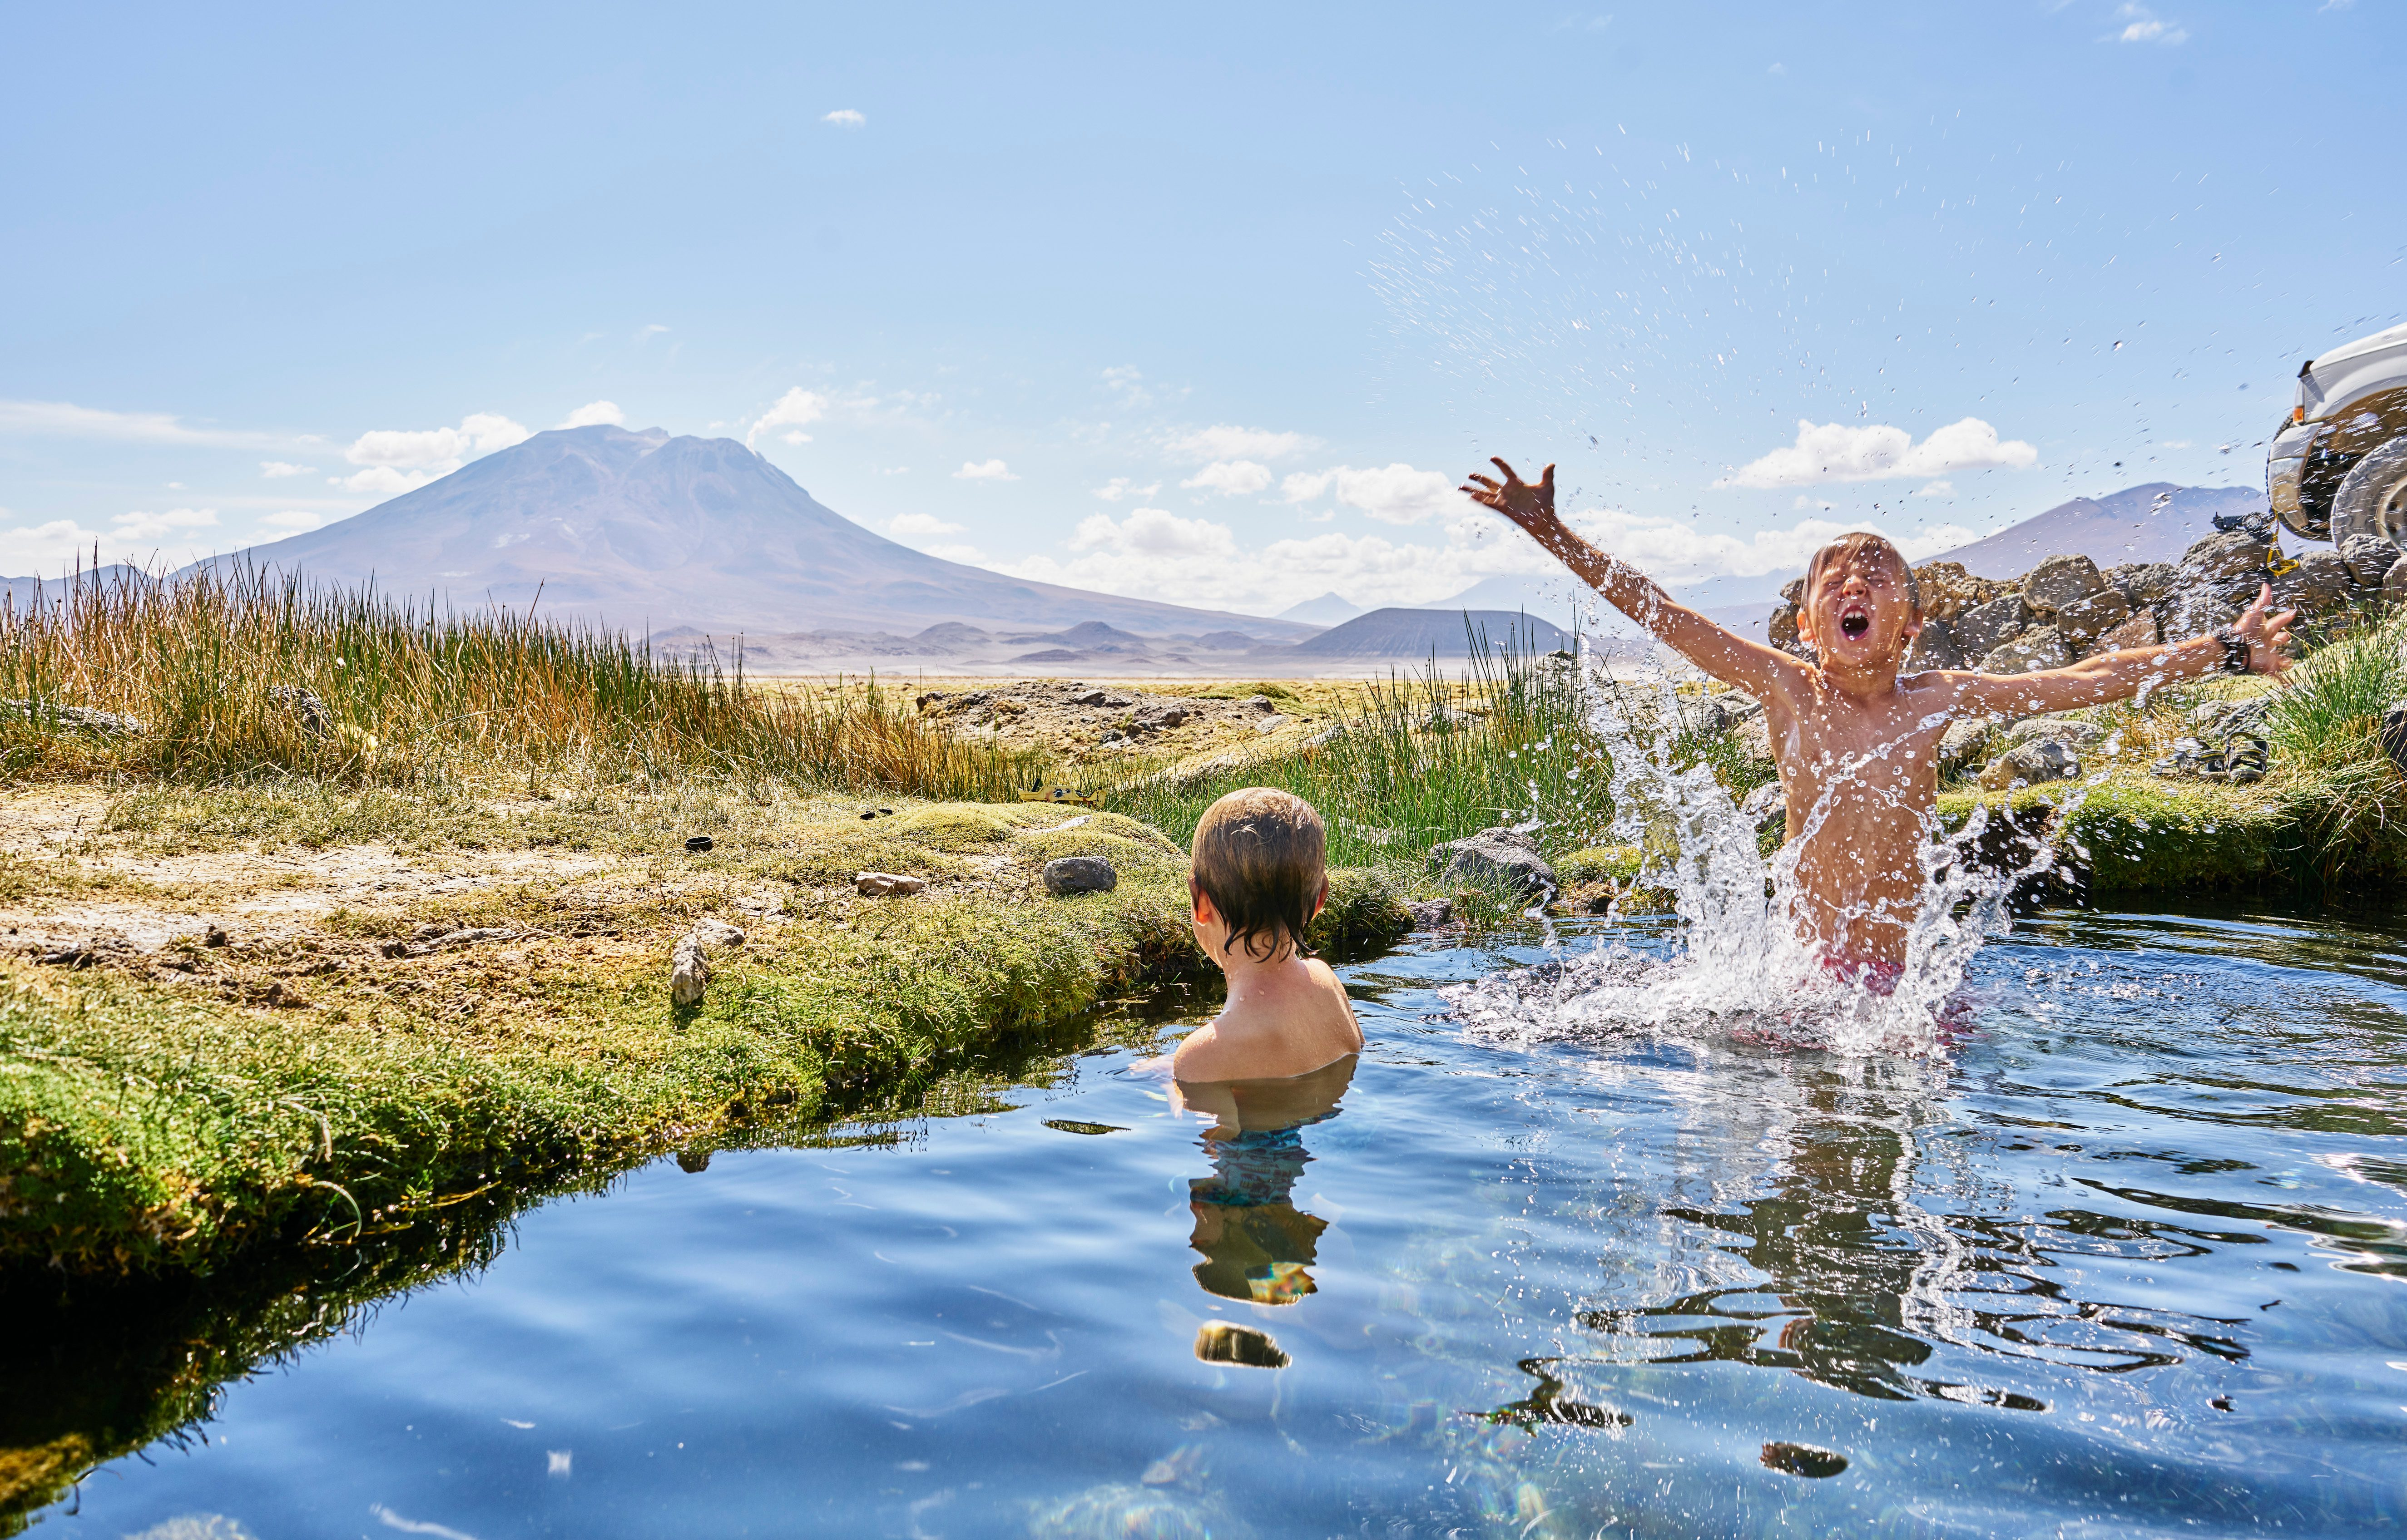 Chile, Salar del Carmen, two boys bathing in hot spring